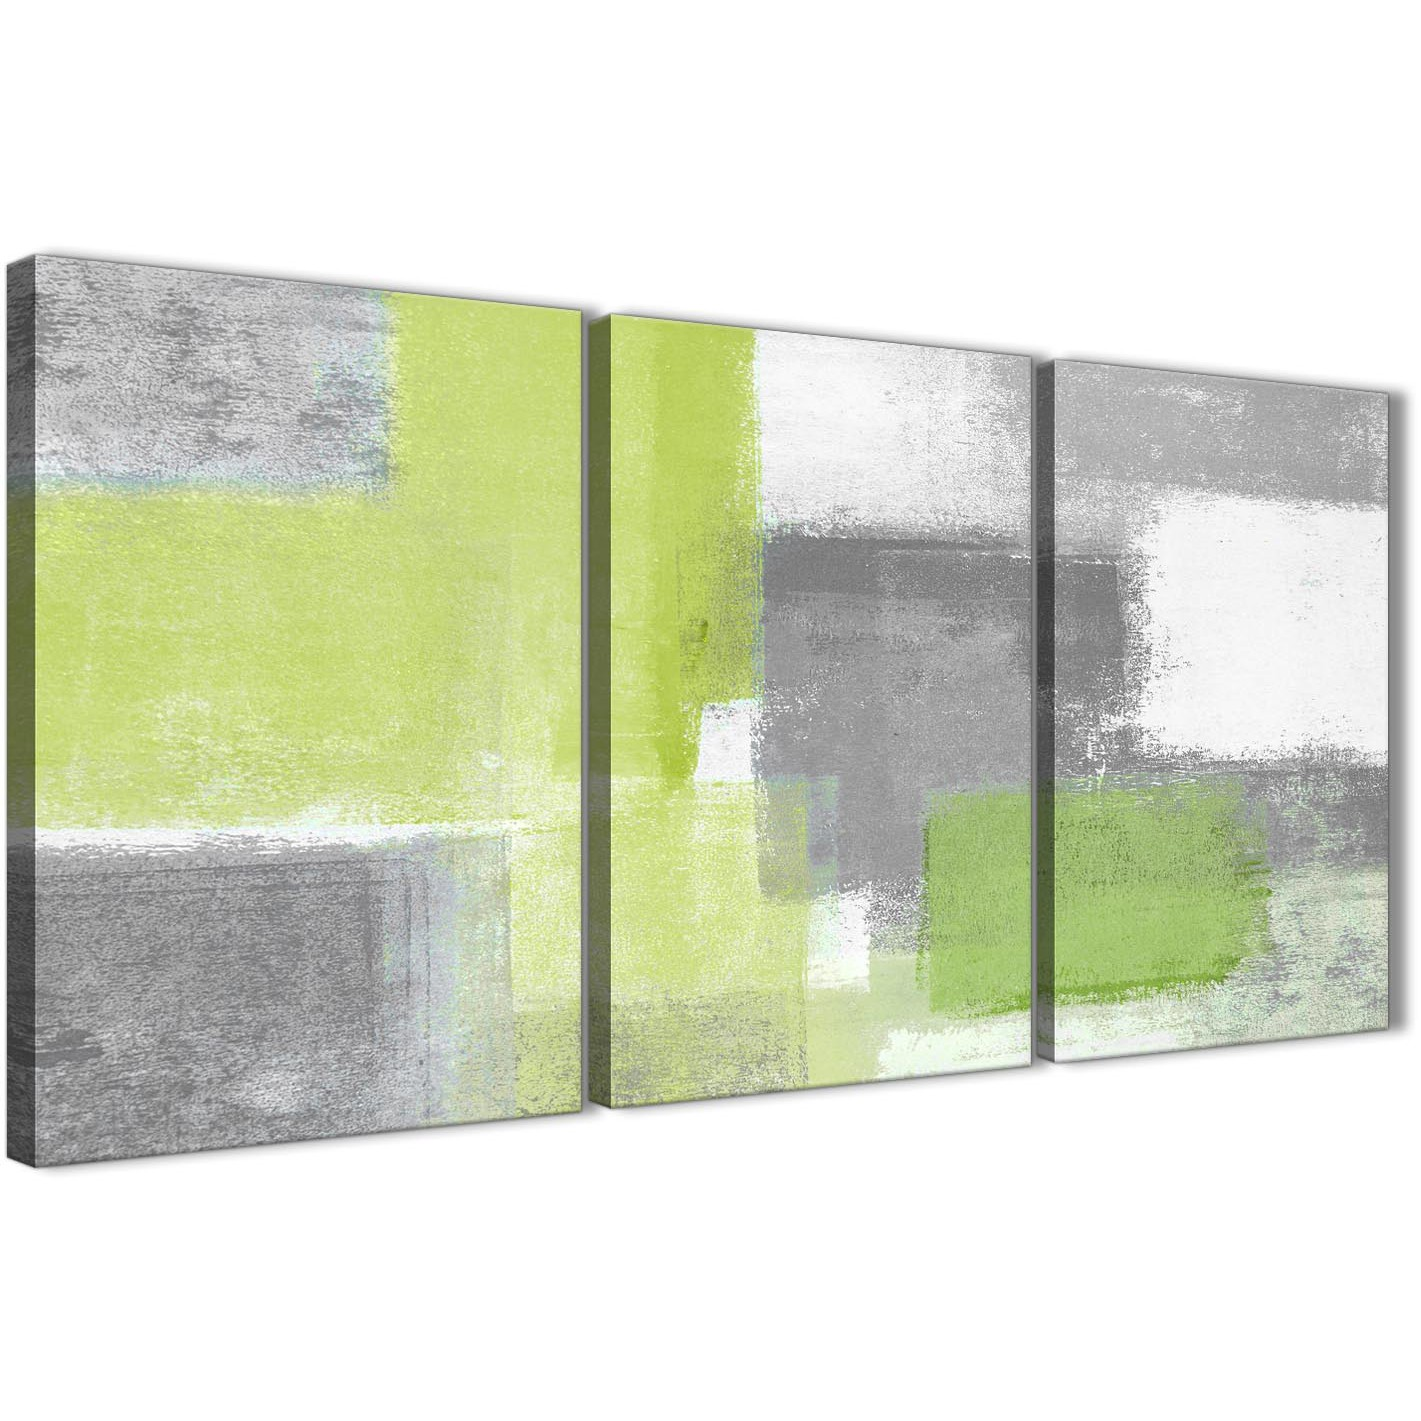 3 Piece Lime Green Grey Hallway Canvas Pictures Decor Abstract